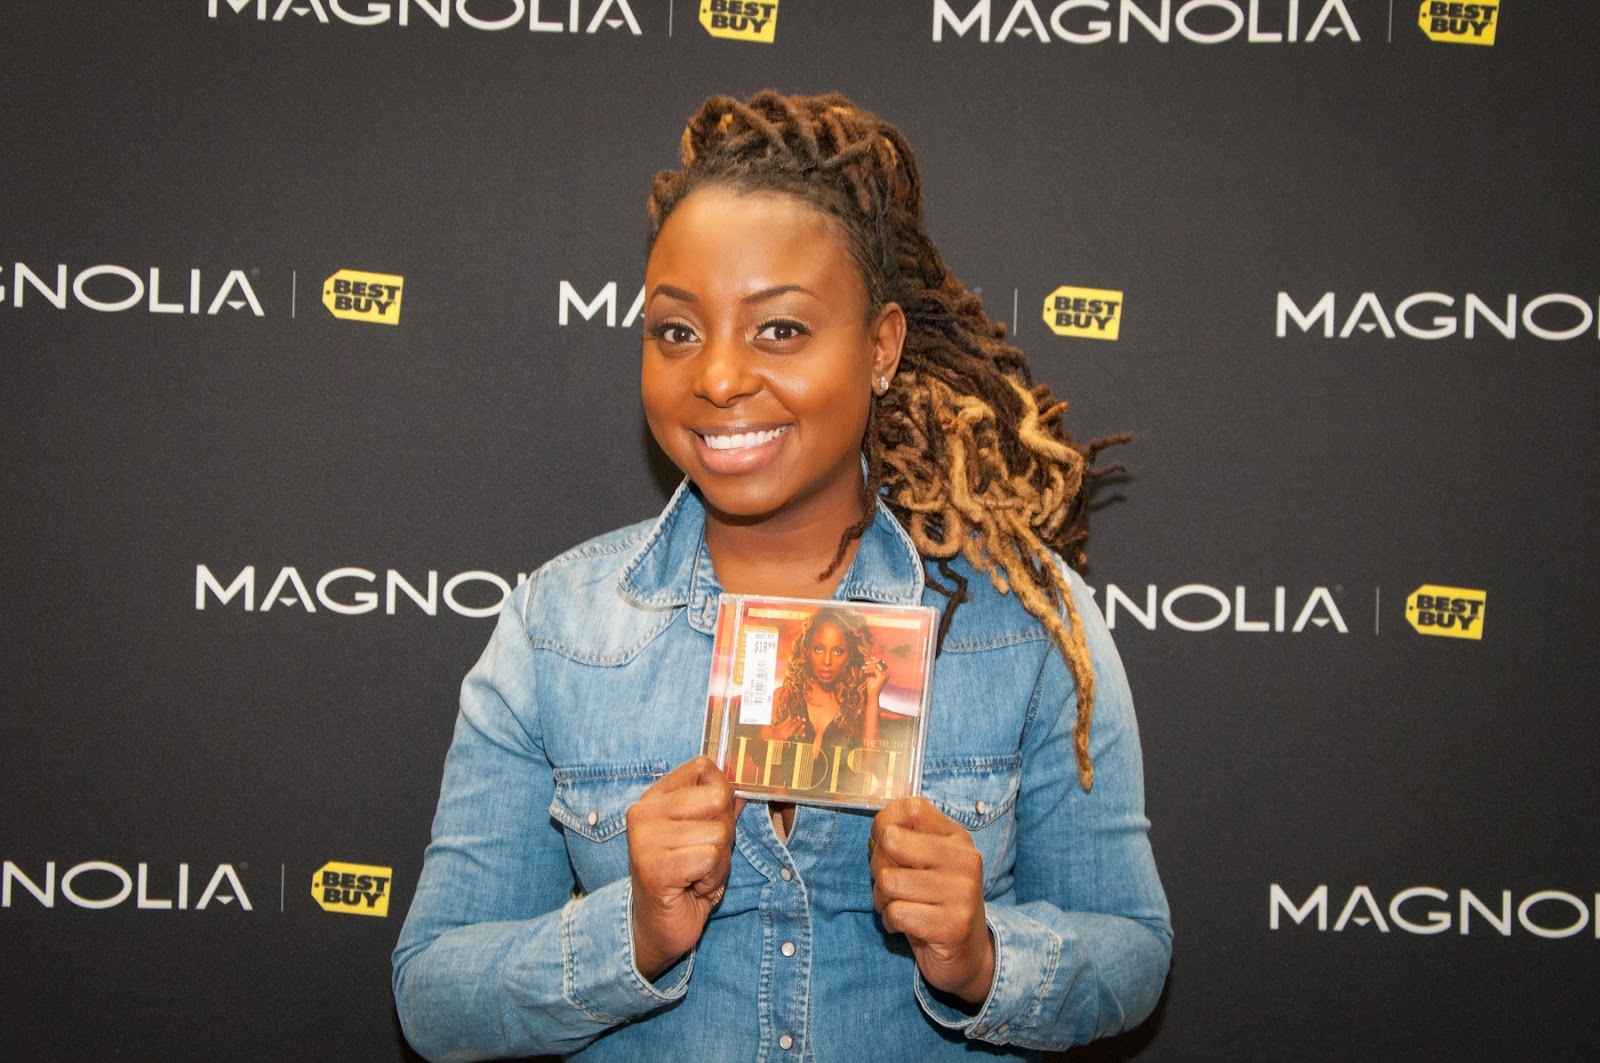 Ledisi holding up her newest release The Truth, Autograph signing, Magnolia Theater Best Buy